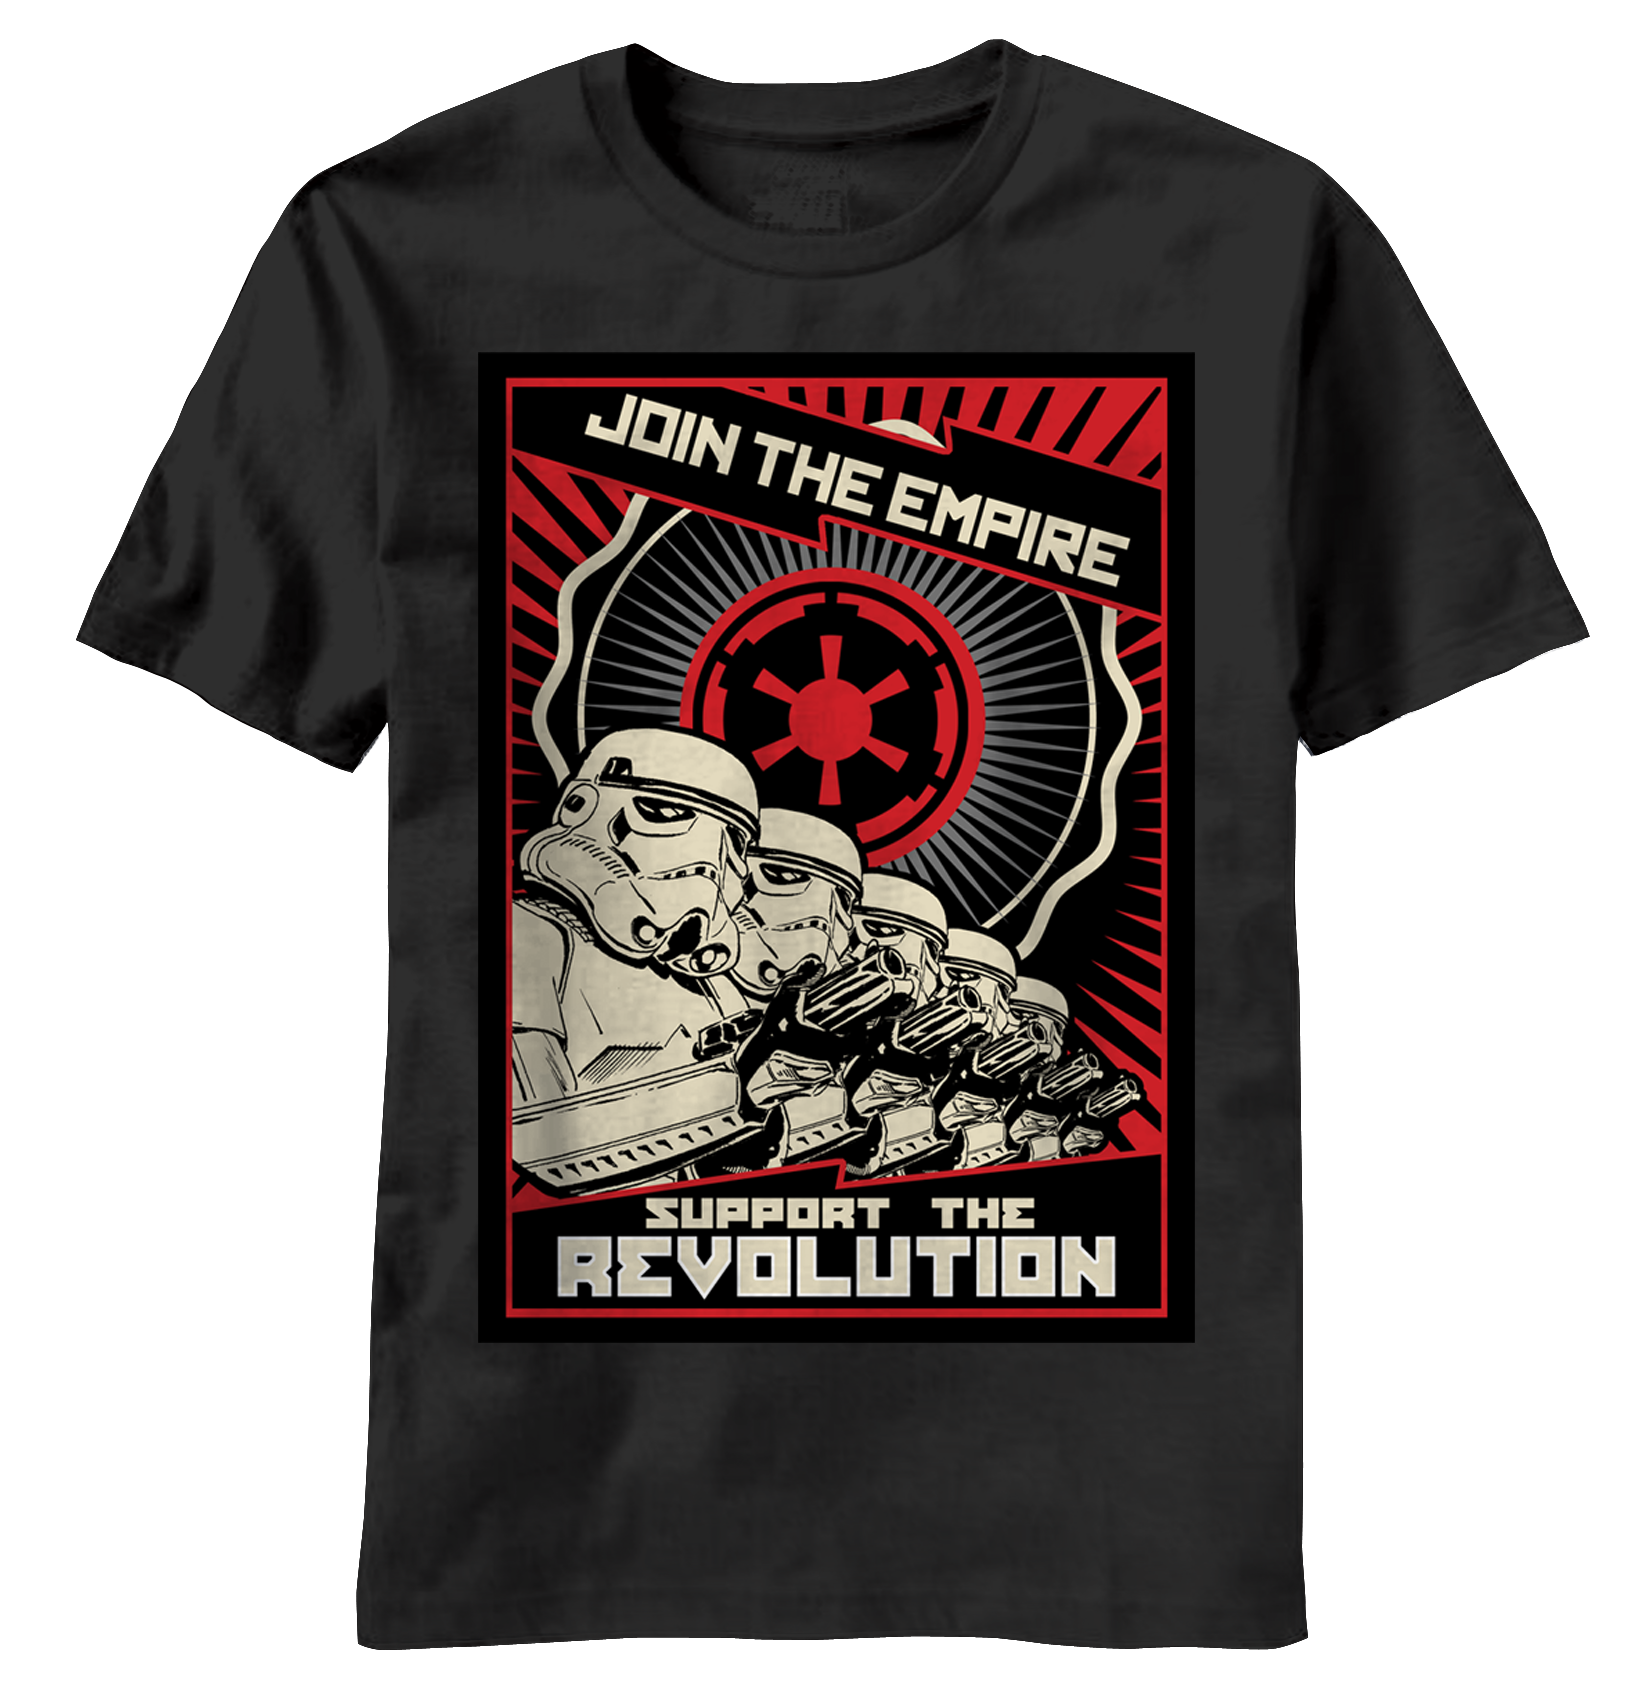 My r2 bb8 heart design is now a t shirt you can buy http tee pub - Star Wars Revolution T Shirt